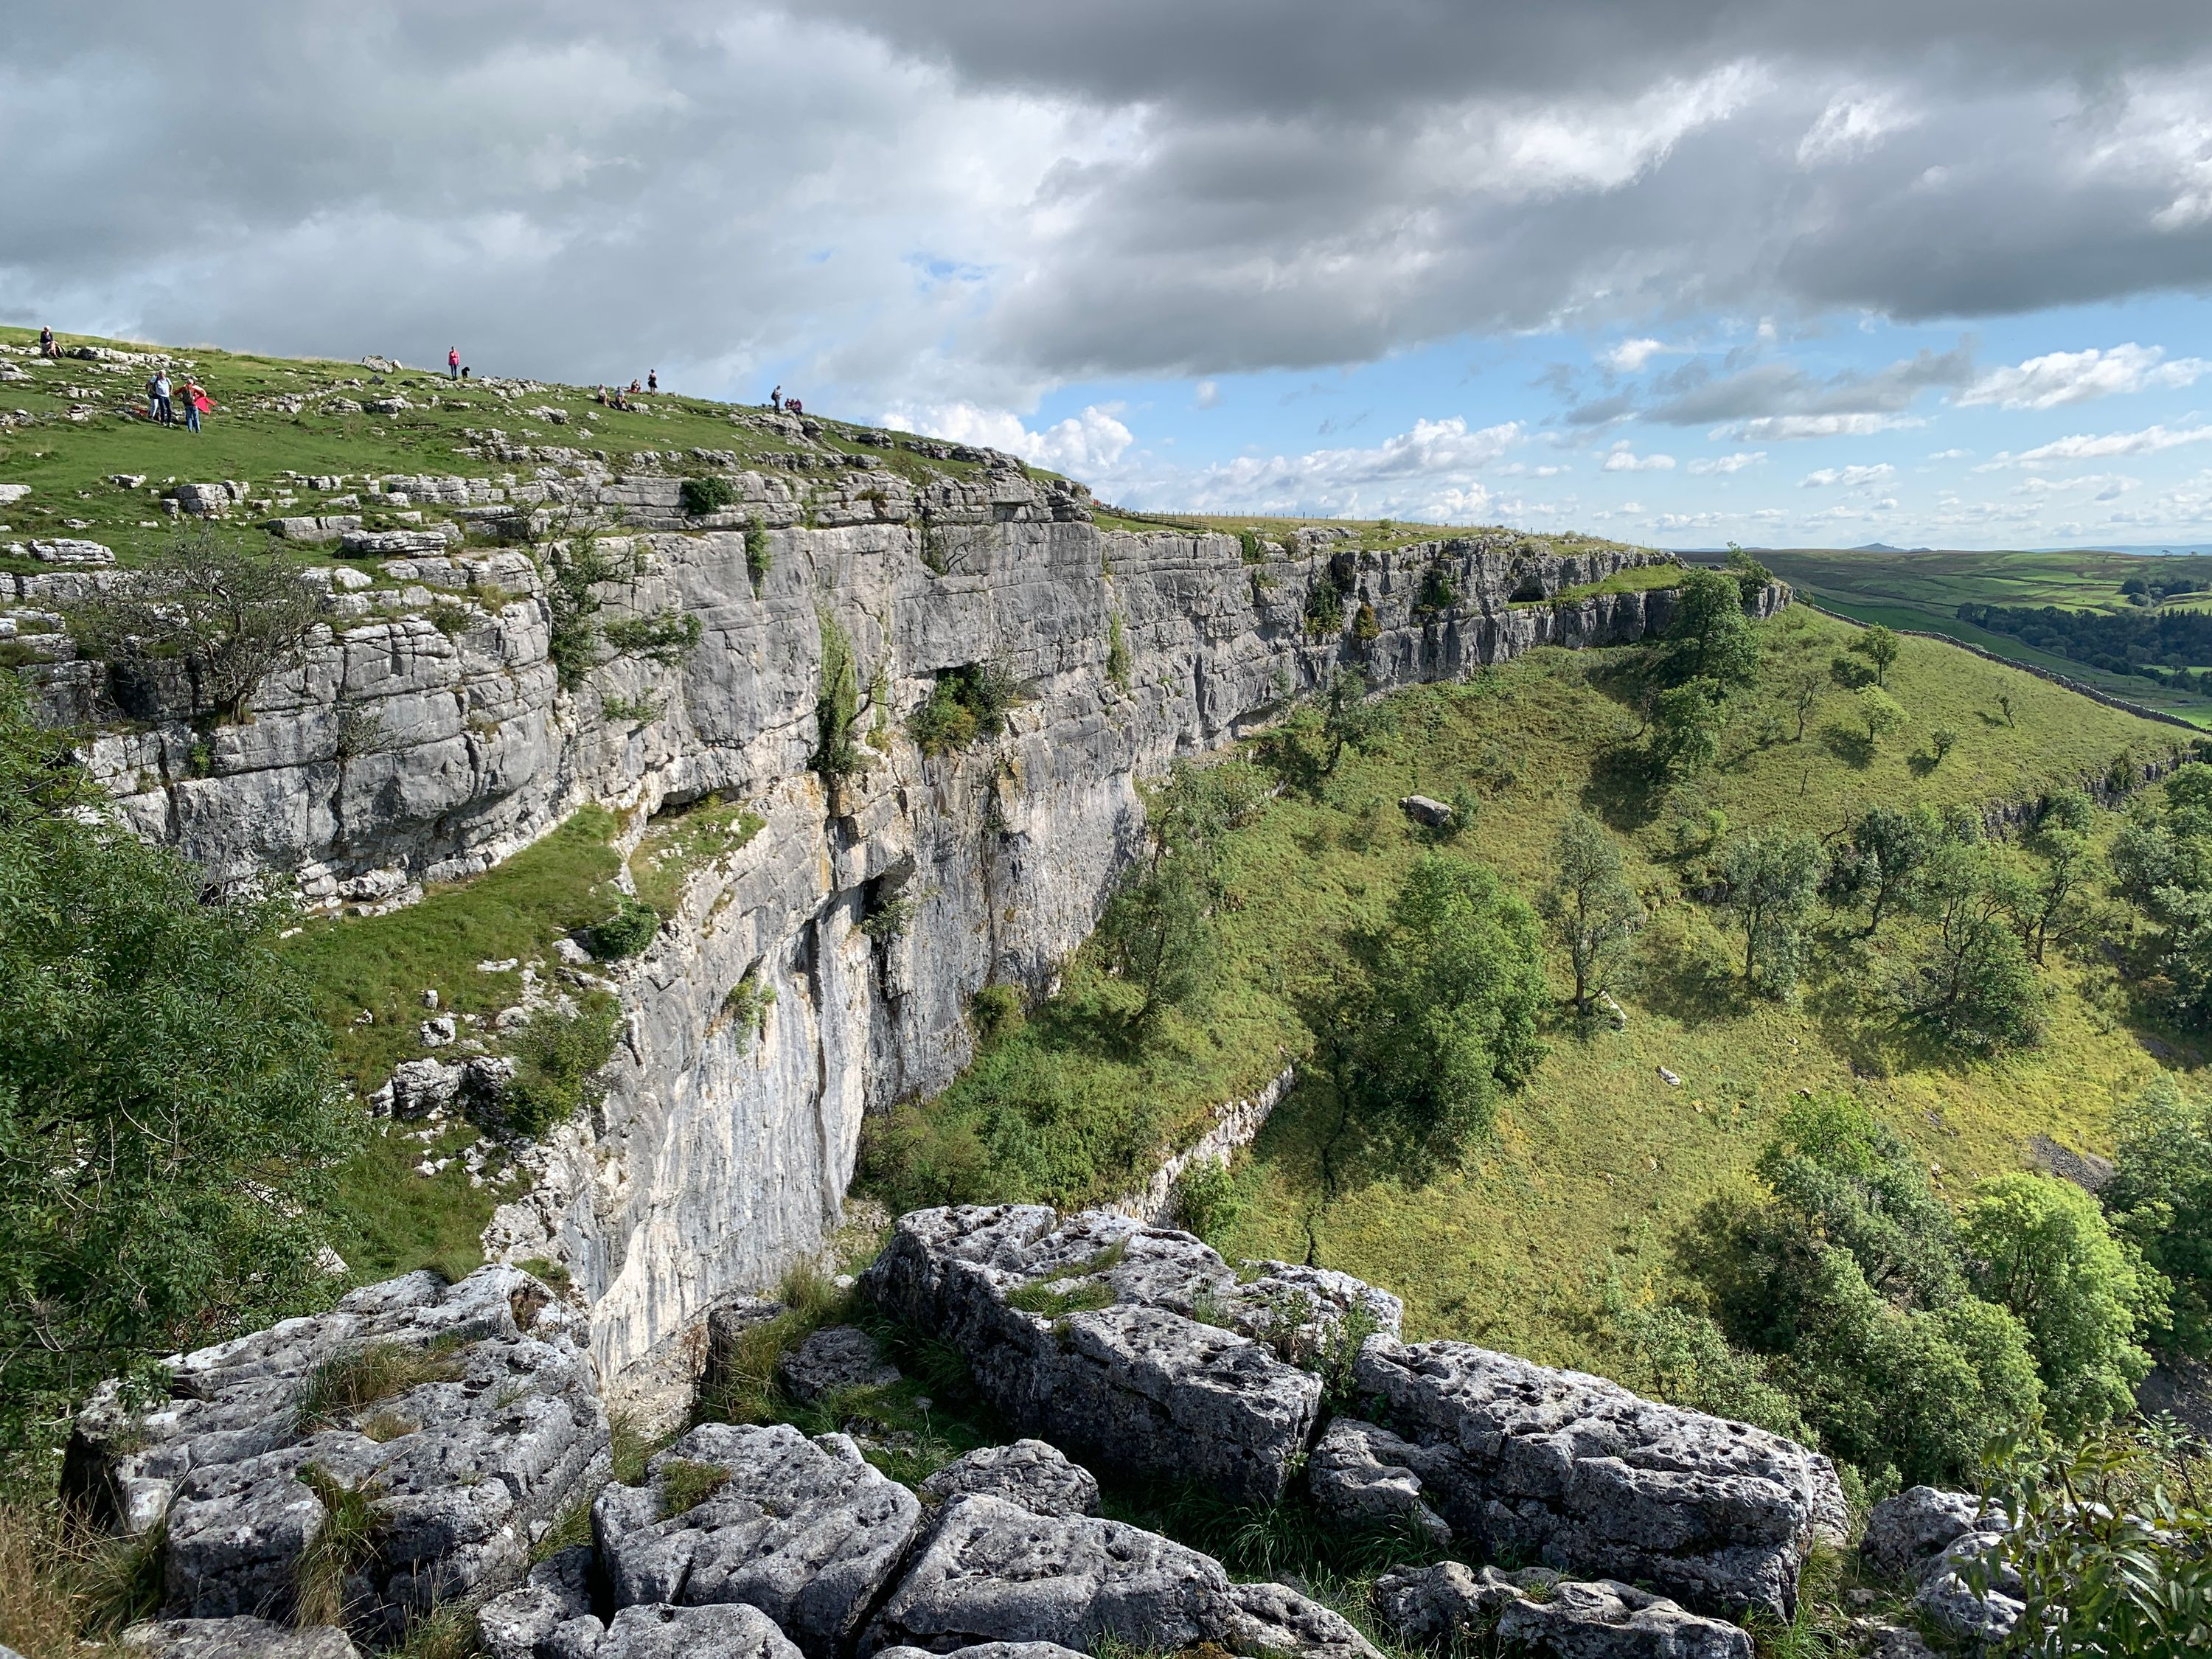 Malham Cove from the top